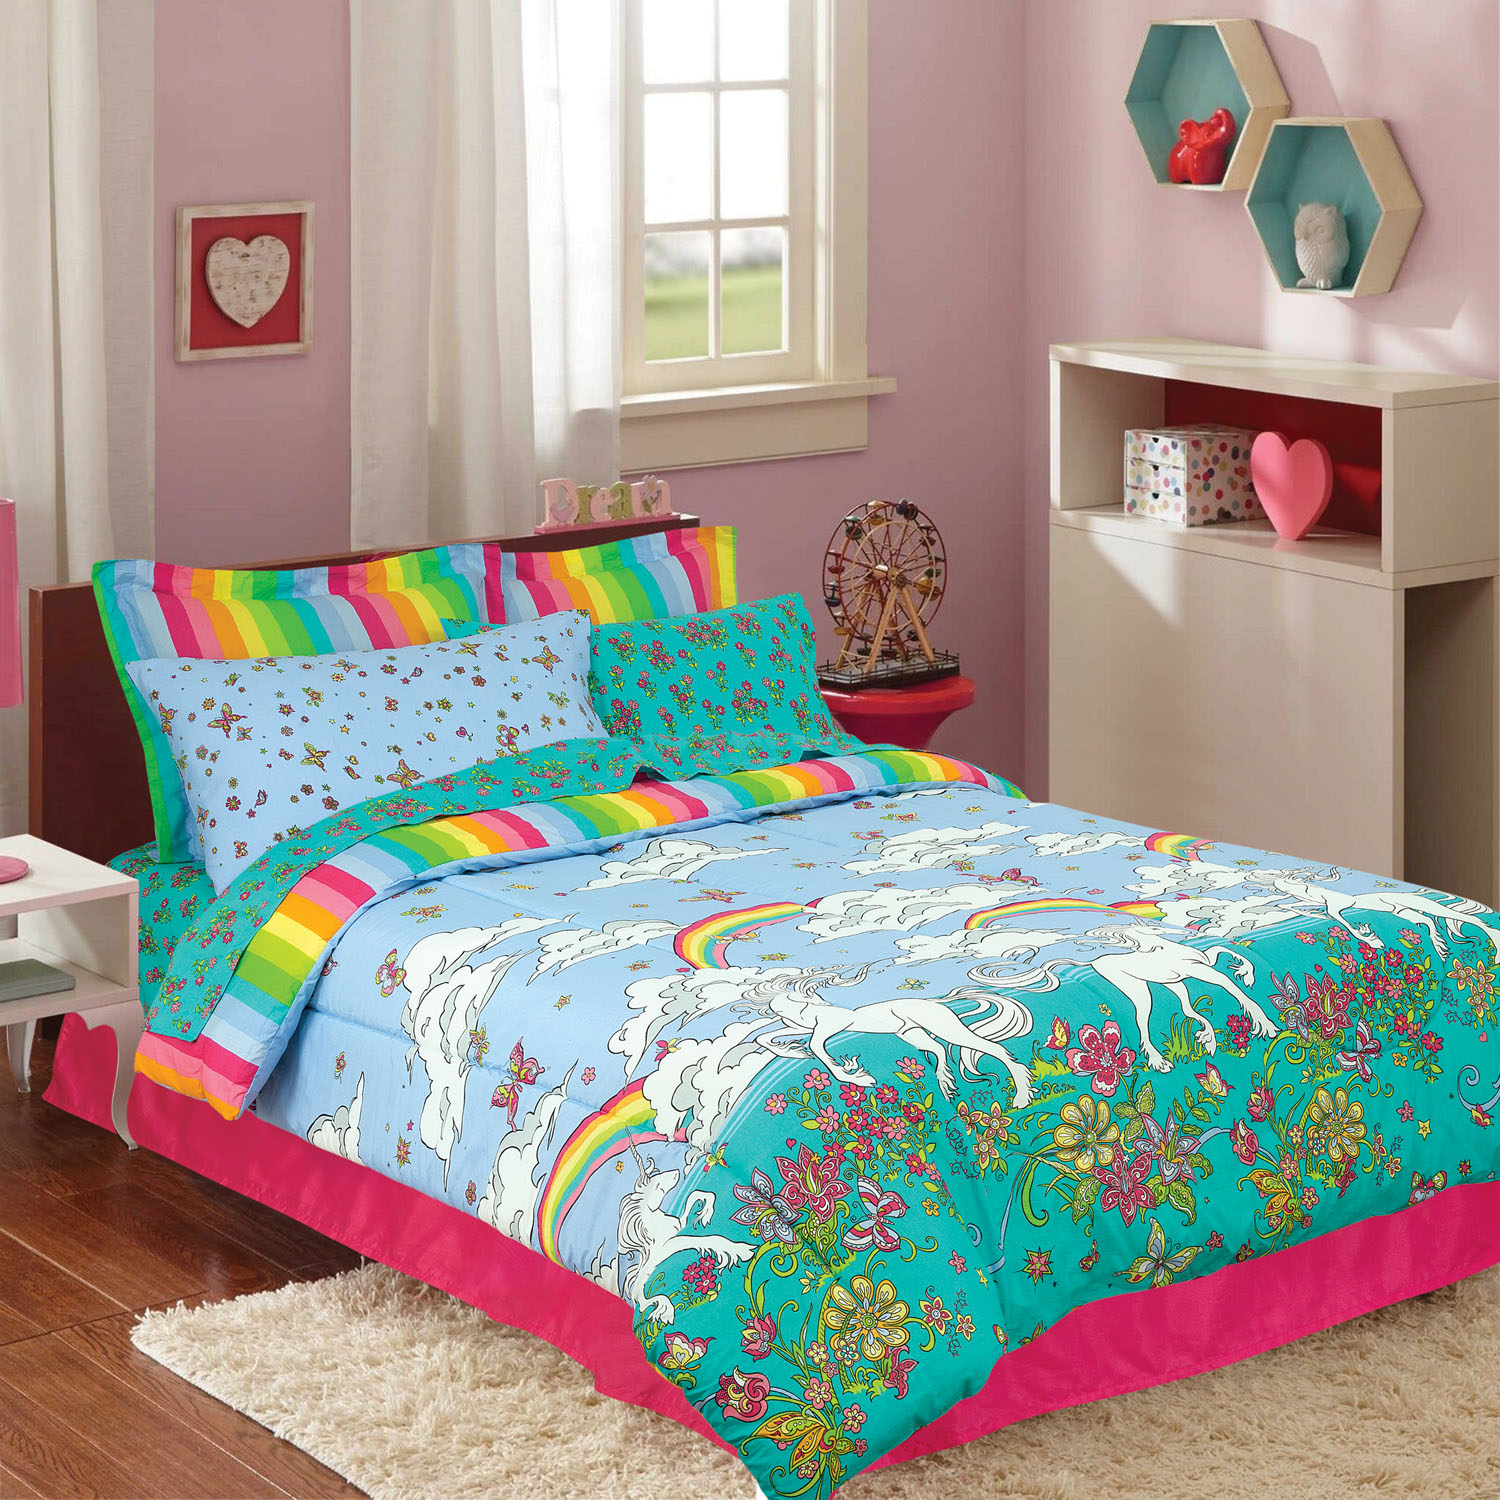 Kidz Mix Unicorn Rainbow Bed In A Bag Kids Bedding Set